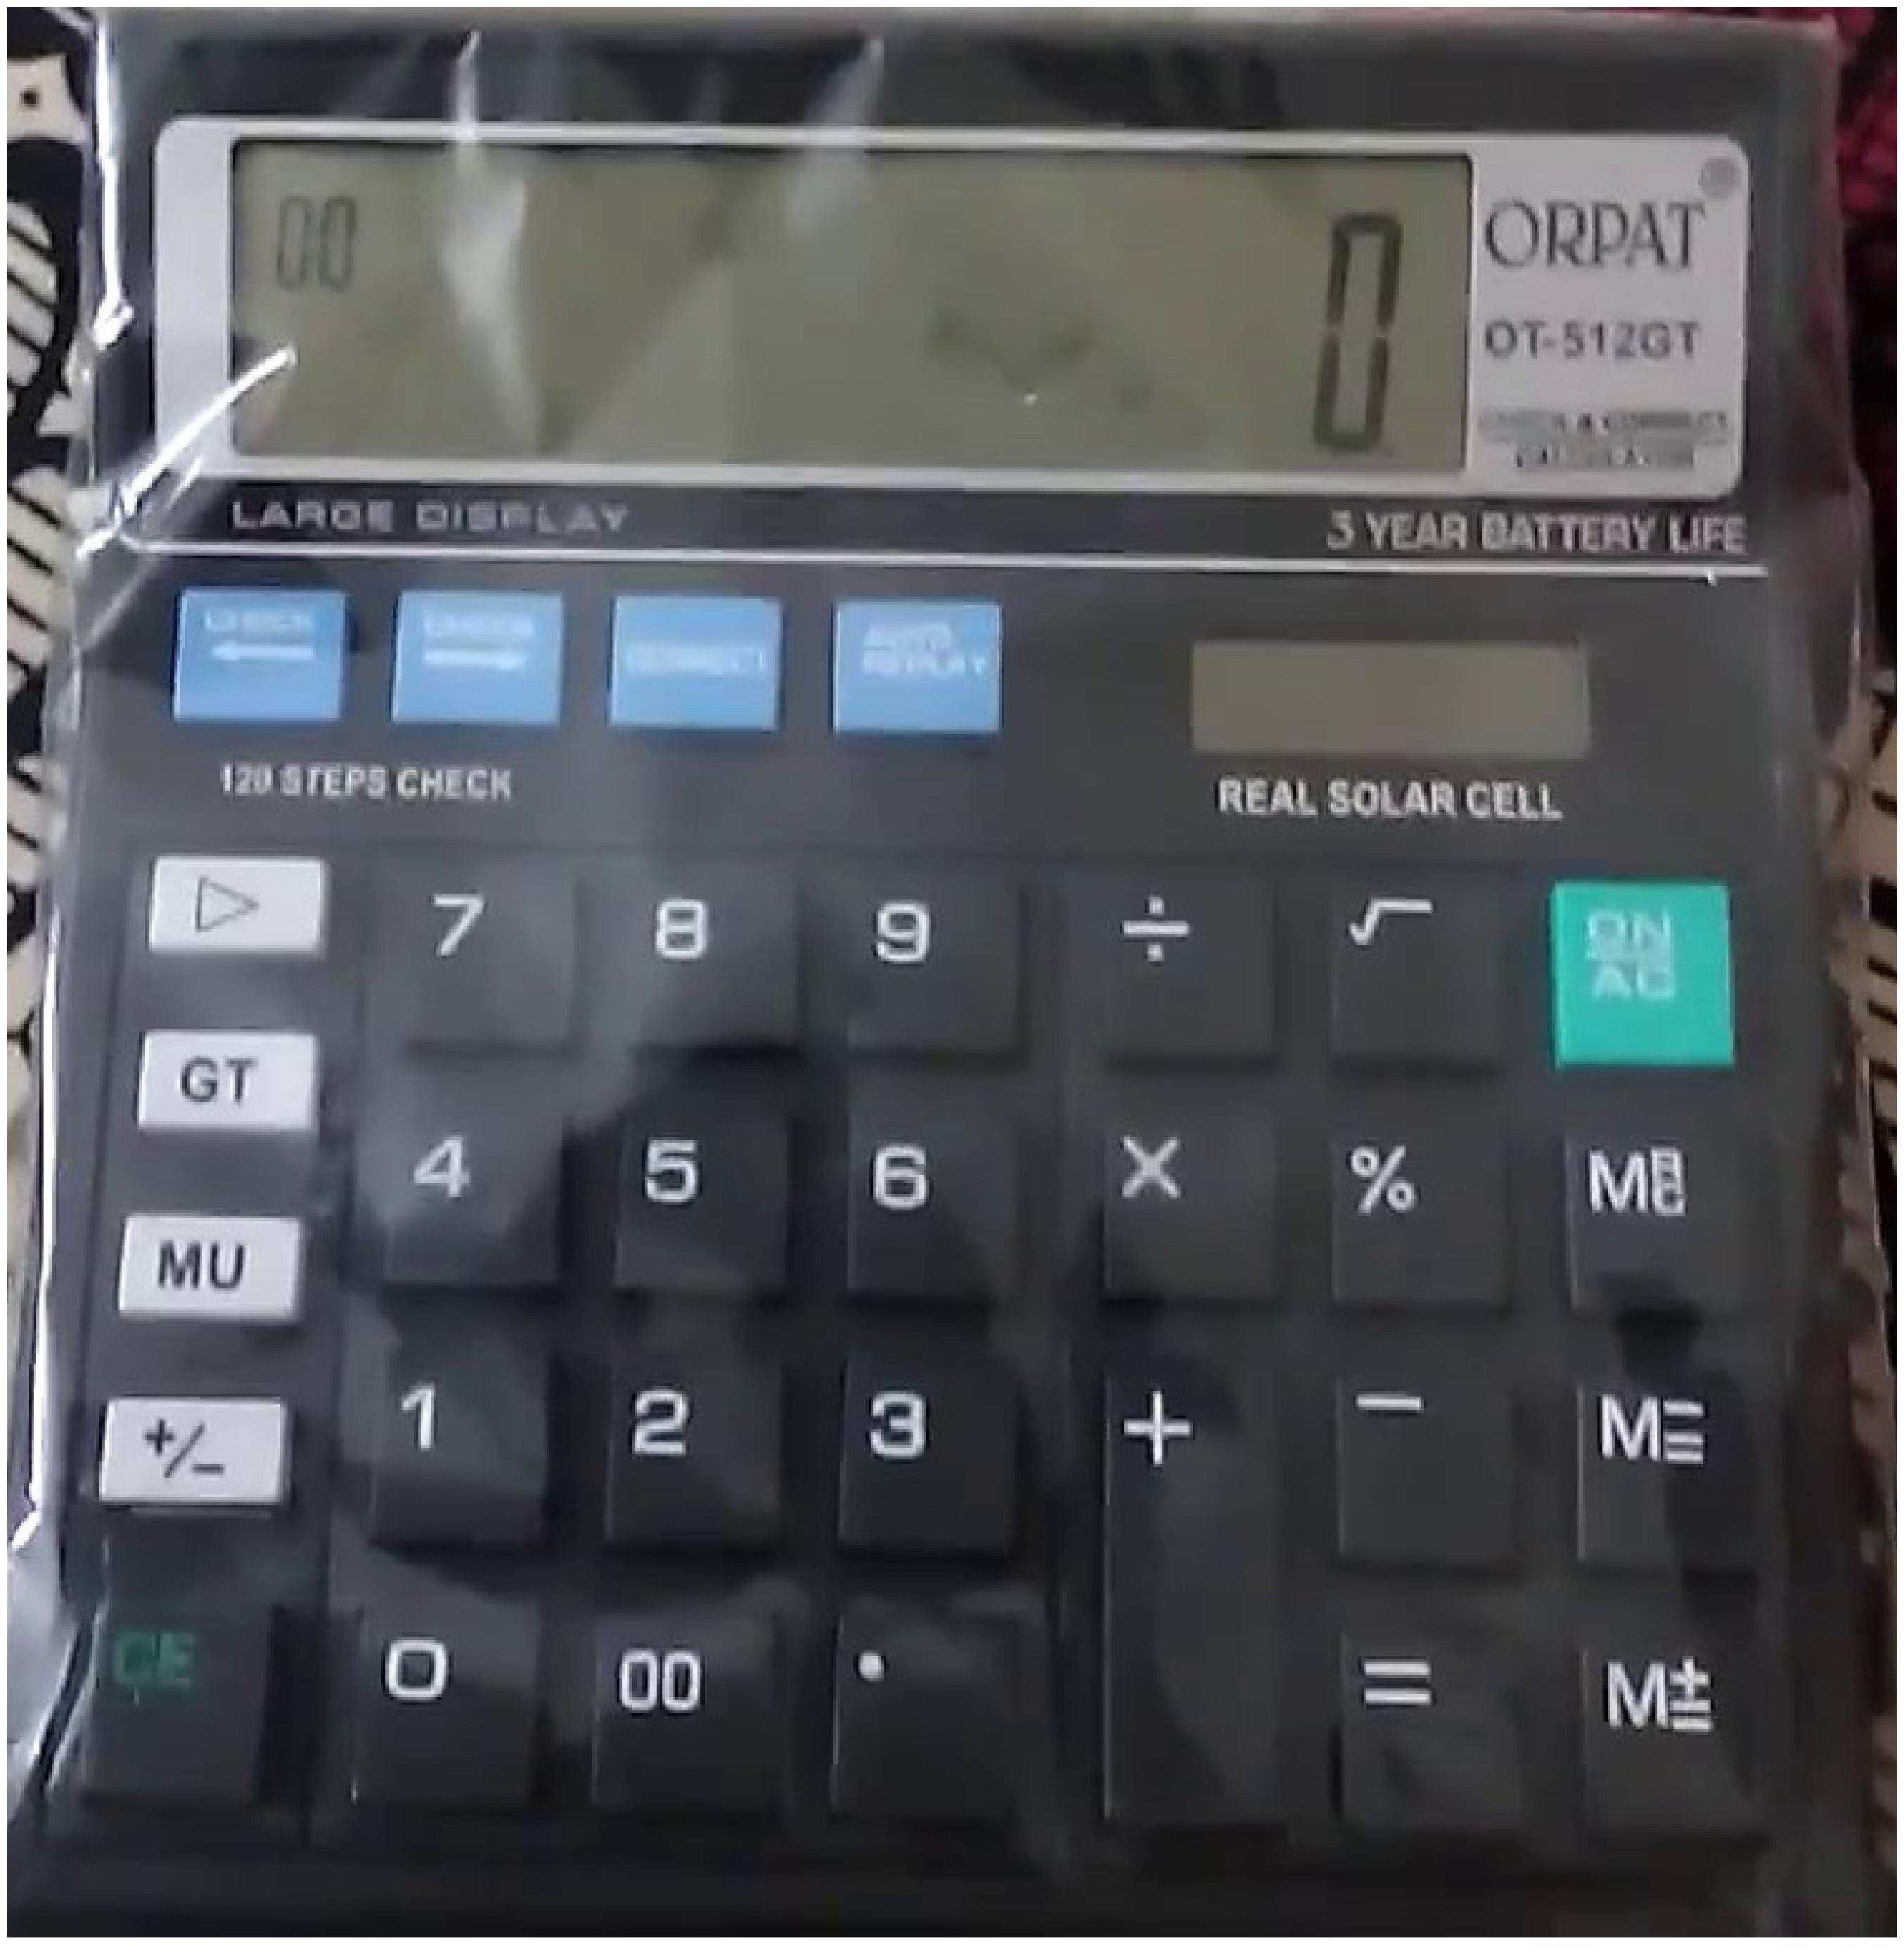 Orpat 0.14 Calculator OT-512GT Basic Black